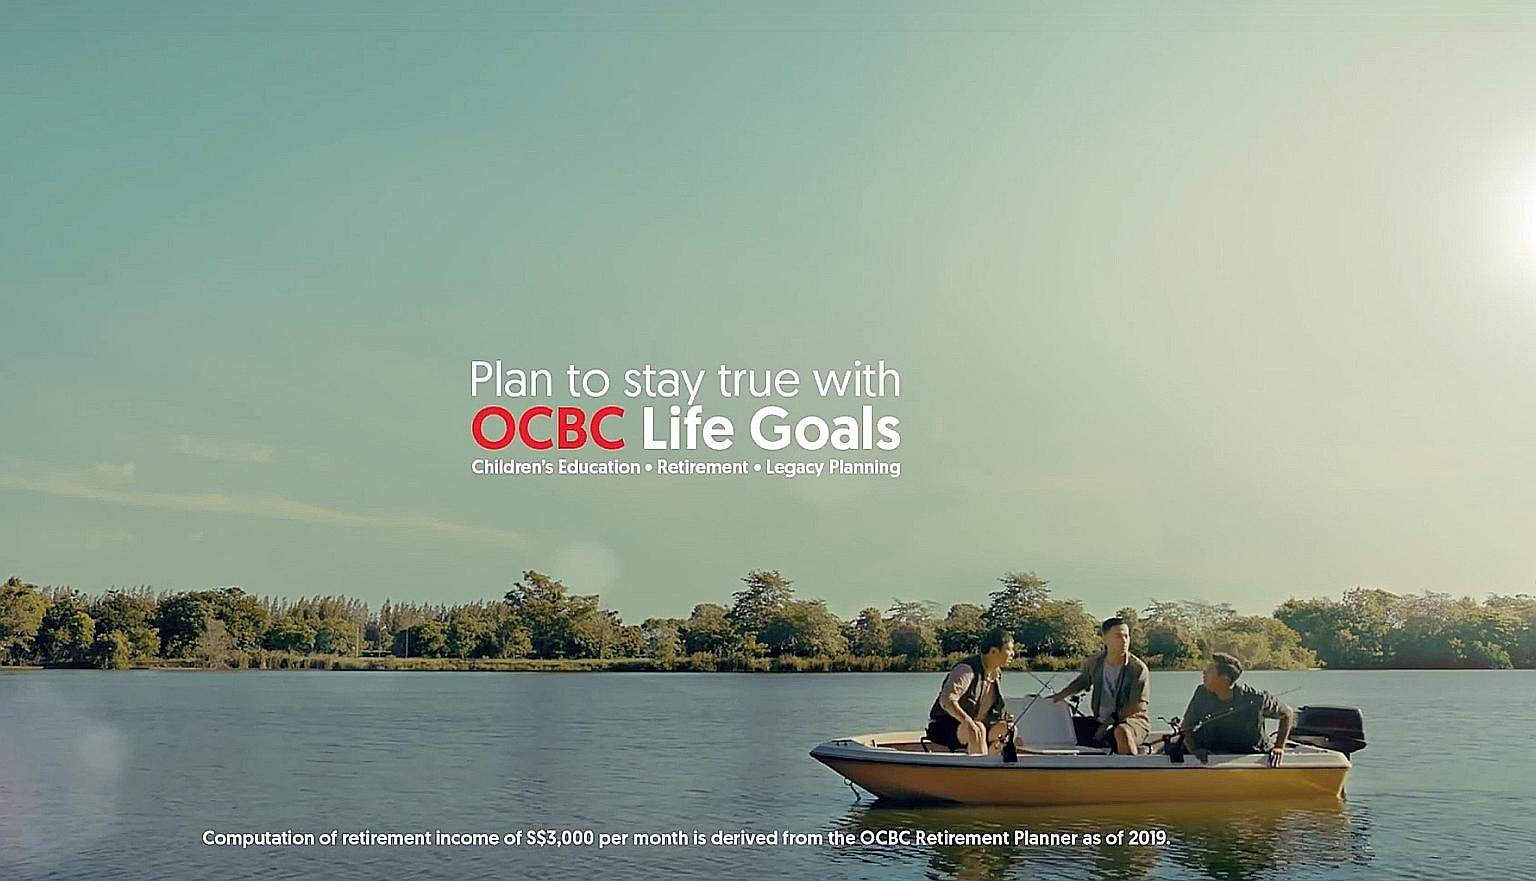 OCBC uses a tongue-in-cheek video of three friends who want to go fishing around the world to get people to think hard about retirement planning. The message is a bold one as it makes people wonder how they can retire happily if they don't have over